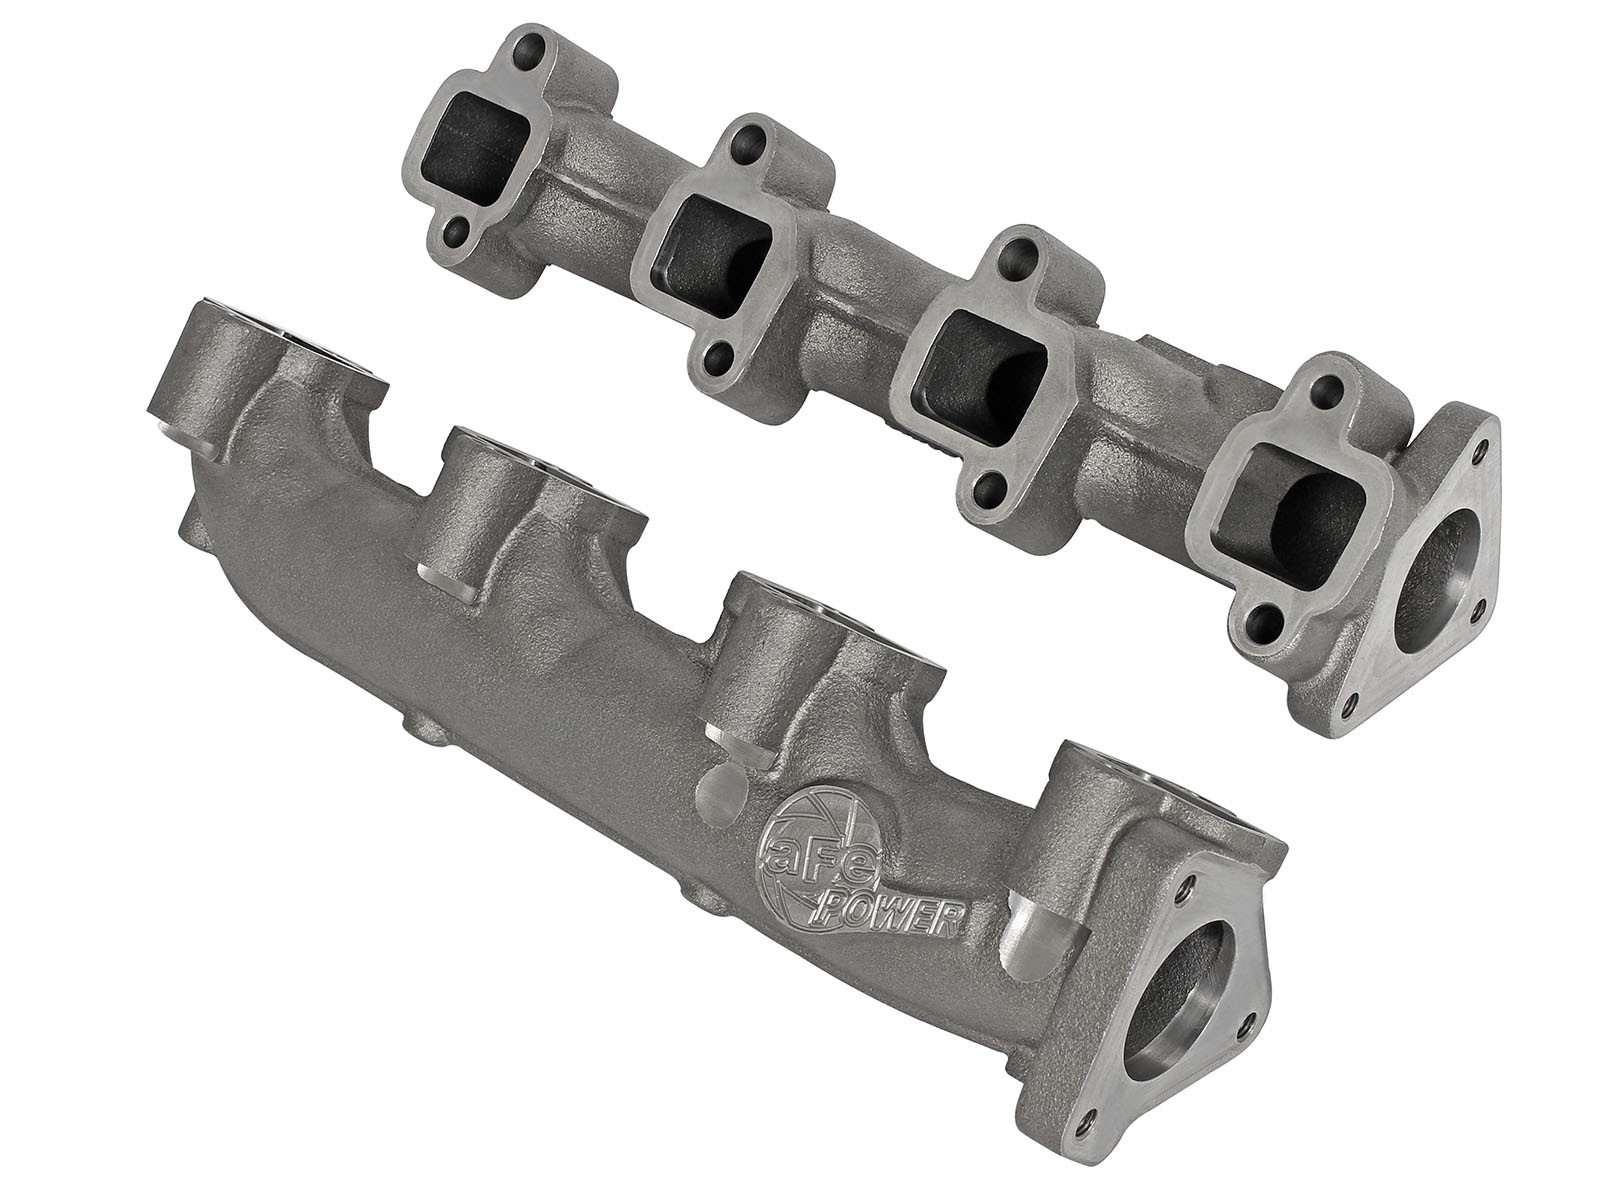 aFe POWER 46-40024 BladeRunner Ported Ductile Iron Exhaust Manifolds